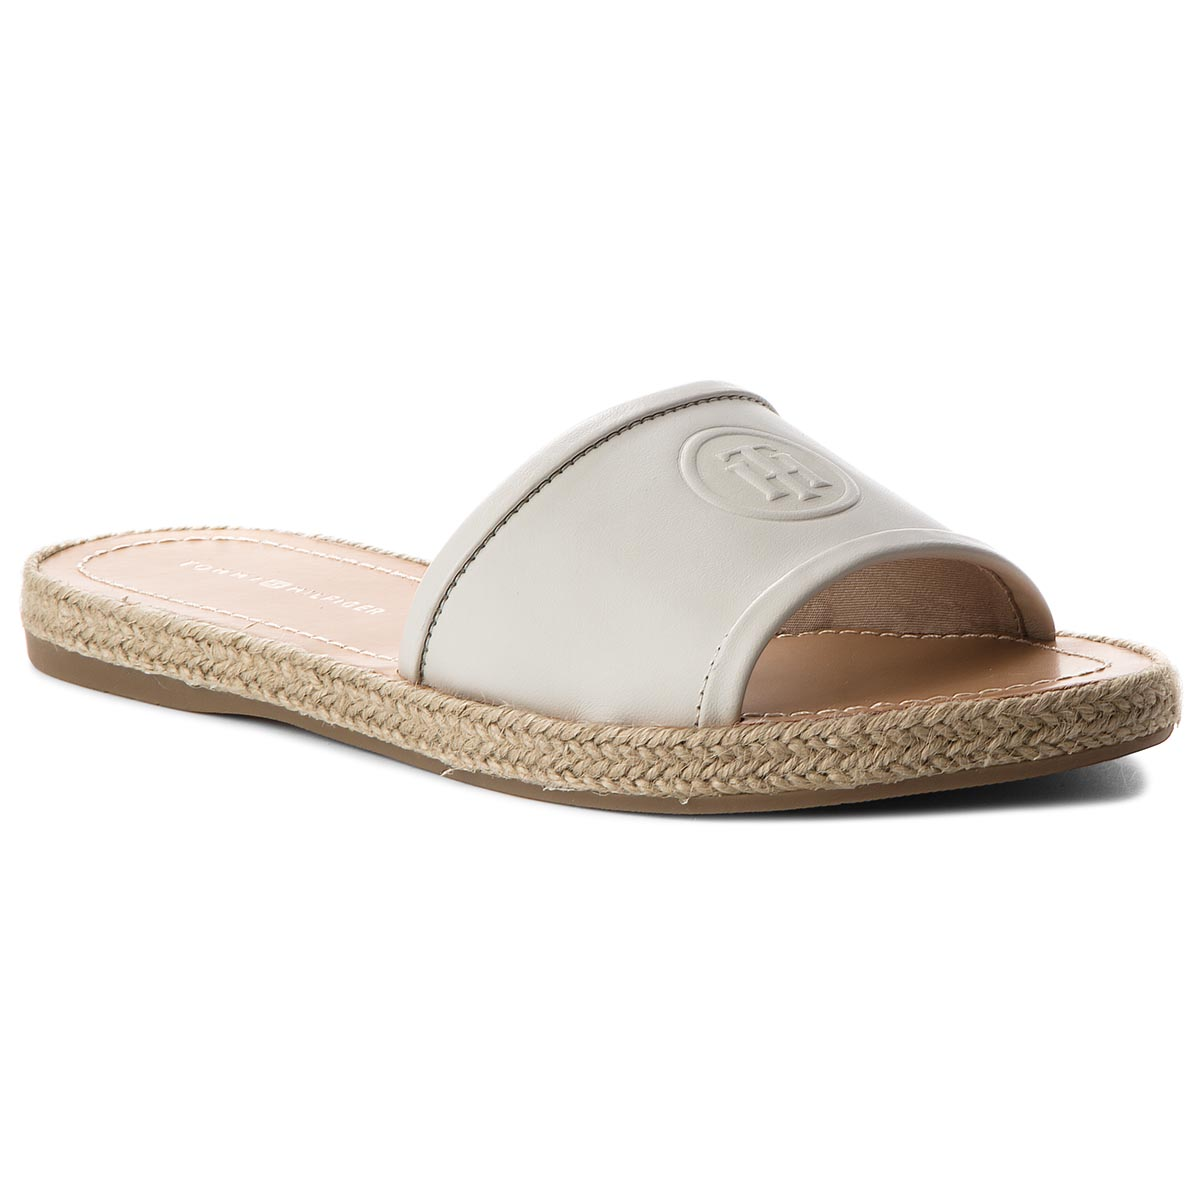 Espadryle TOMMY HILFIGER - Leather Flat Mule FW0FW02790 Whisper White 121